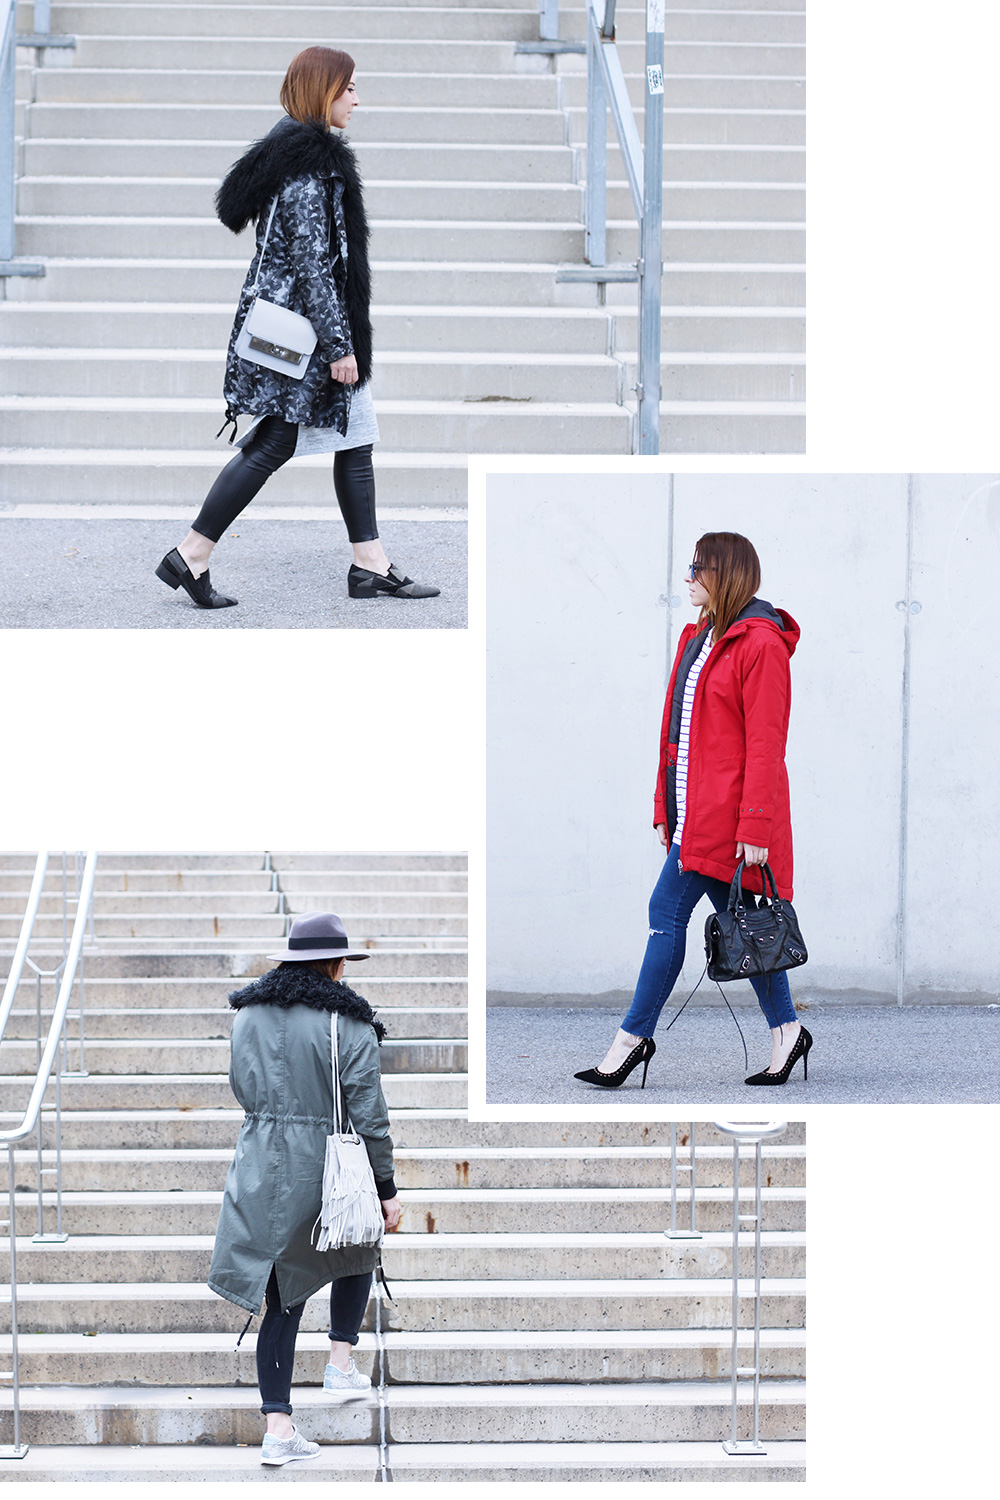 who is mocca, modeblog, fashionblog, parka kombinieren, khaki parka asos, camouflage parka topshop, roter parka tatonka, outfitideen, alltagsoutfits, streetstyle, modeblog österreich, whoismocca.com